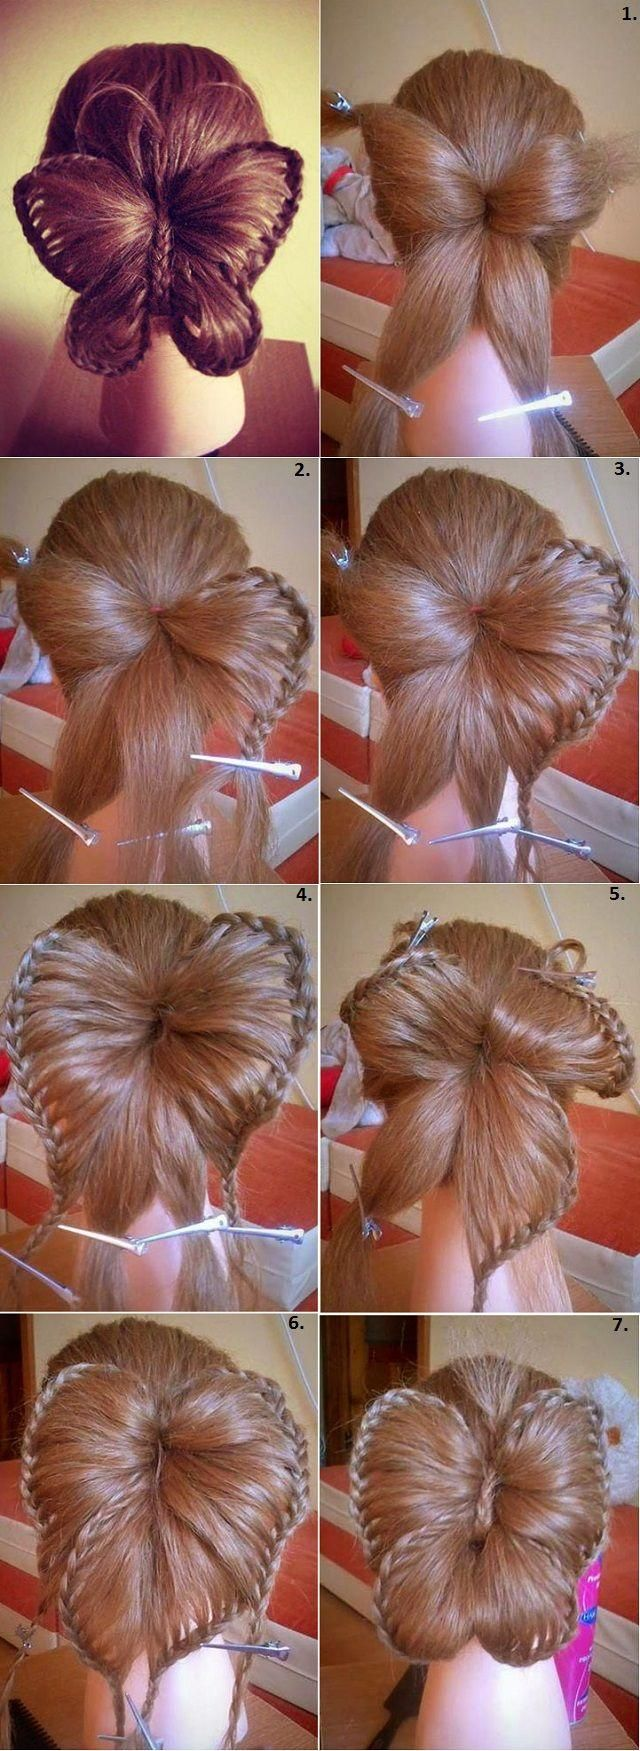 butterfly hairstyle, wow!